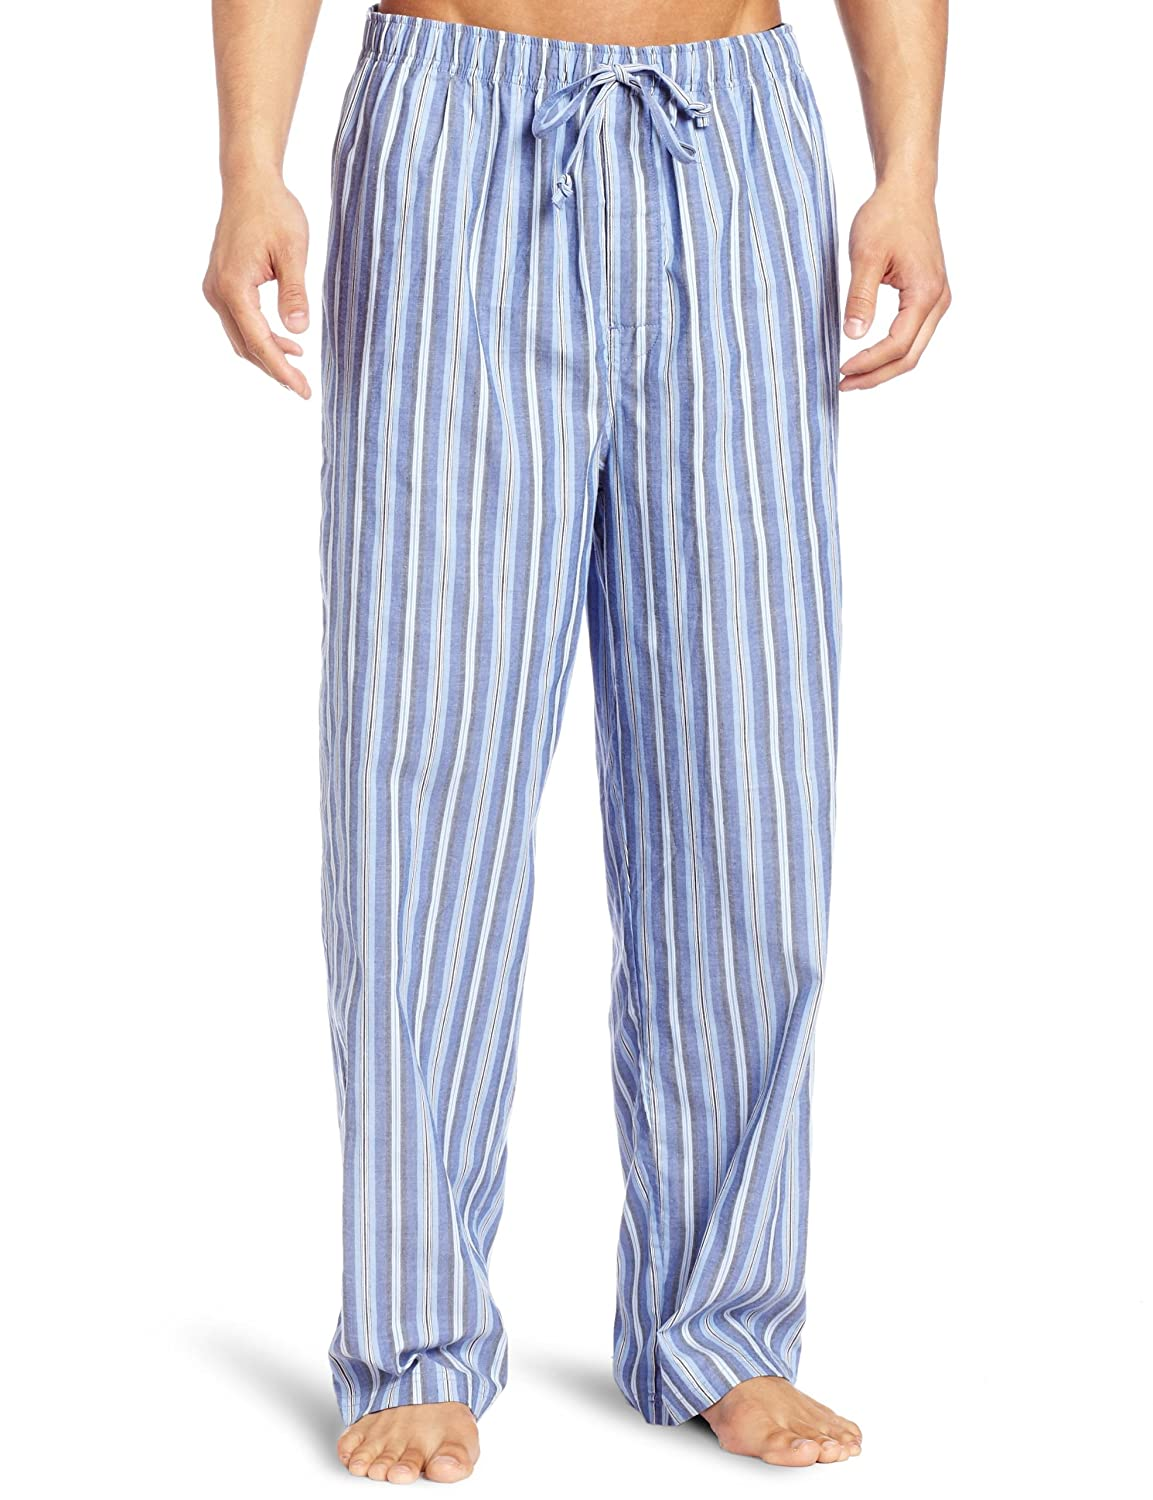 Enjoy free shipping and easy returns every day at Kohl's. Find great deals on Mens Pajama Bottoms at Kohl's today!